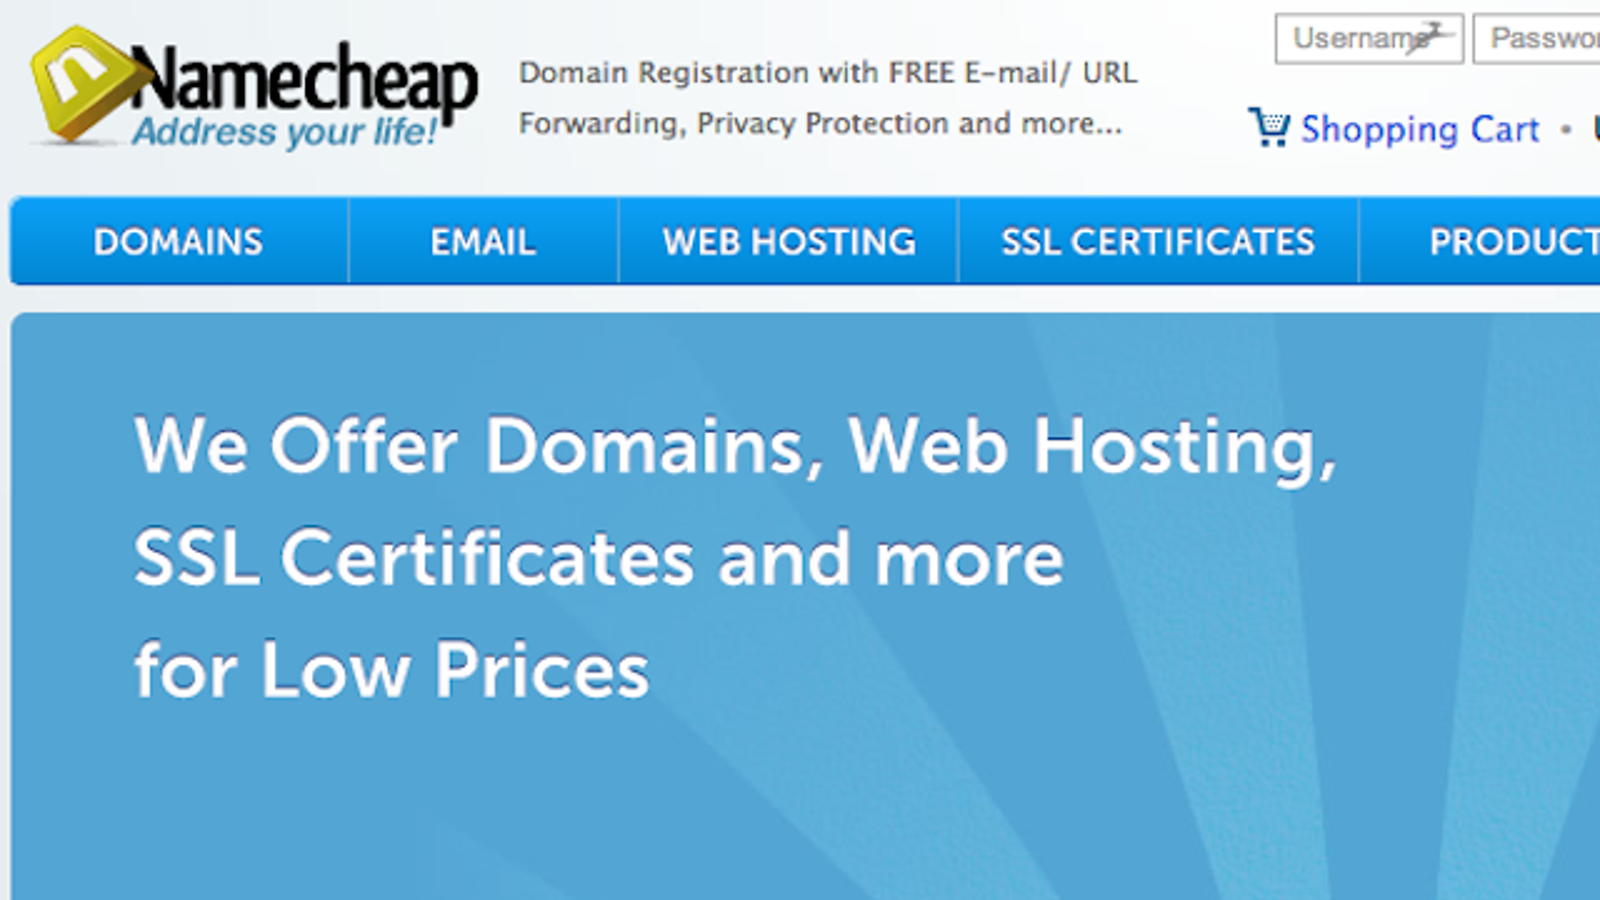 Most Popular Domain Name Registrar Namecheap